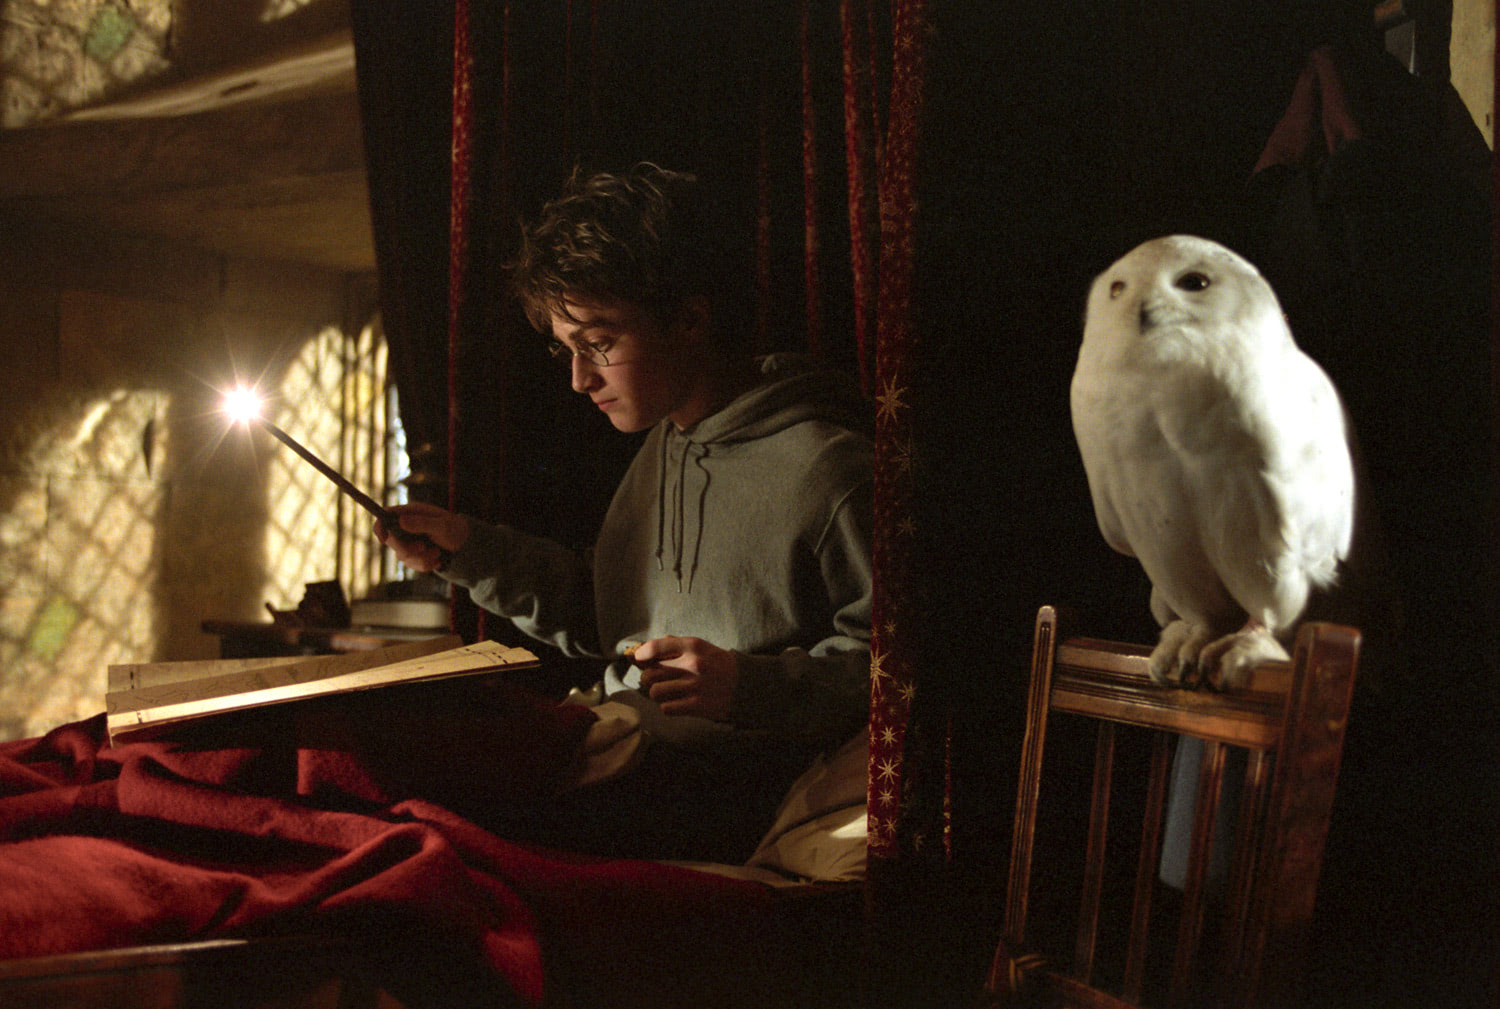 Harry and Hedwig in bed